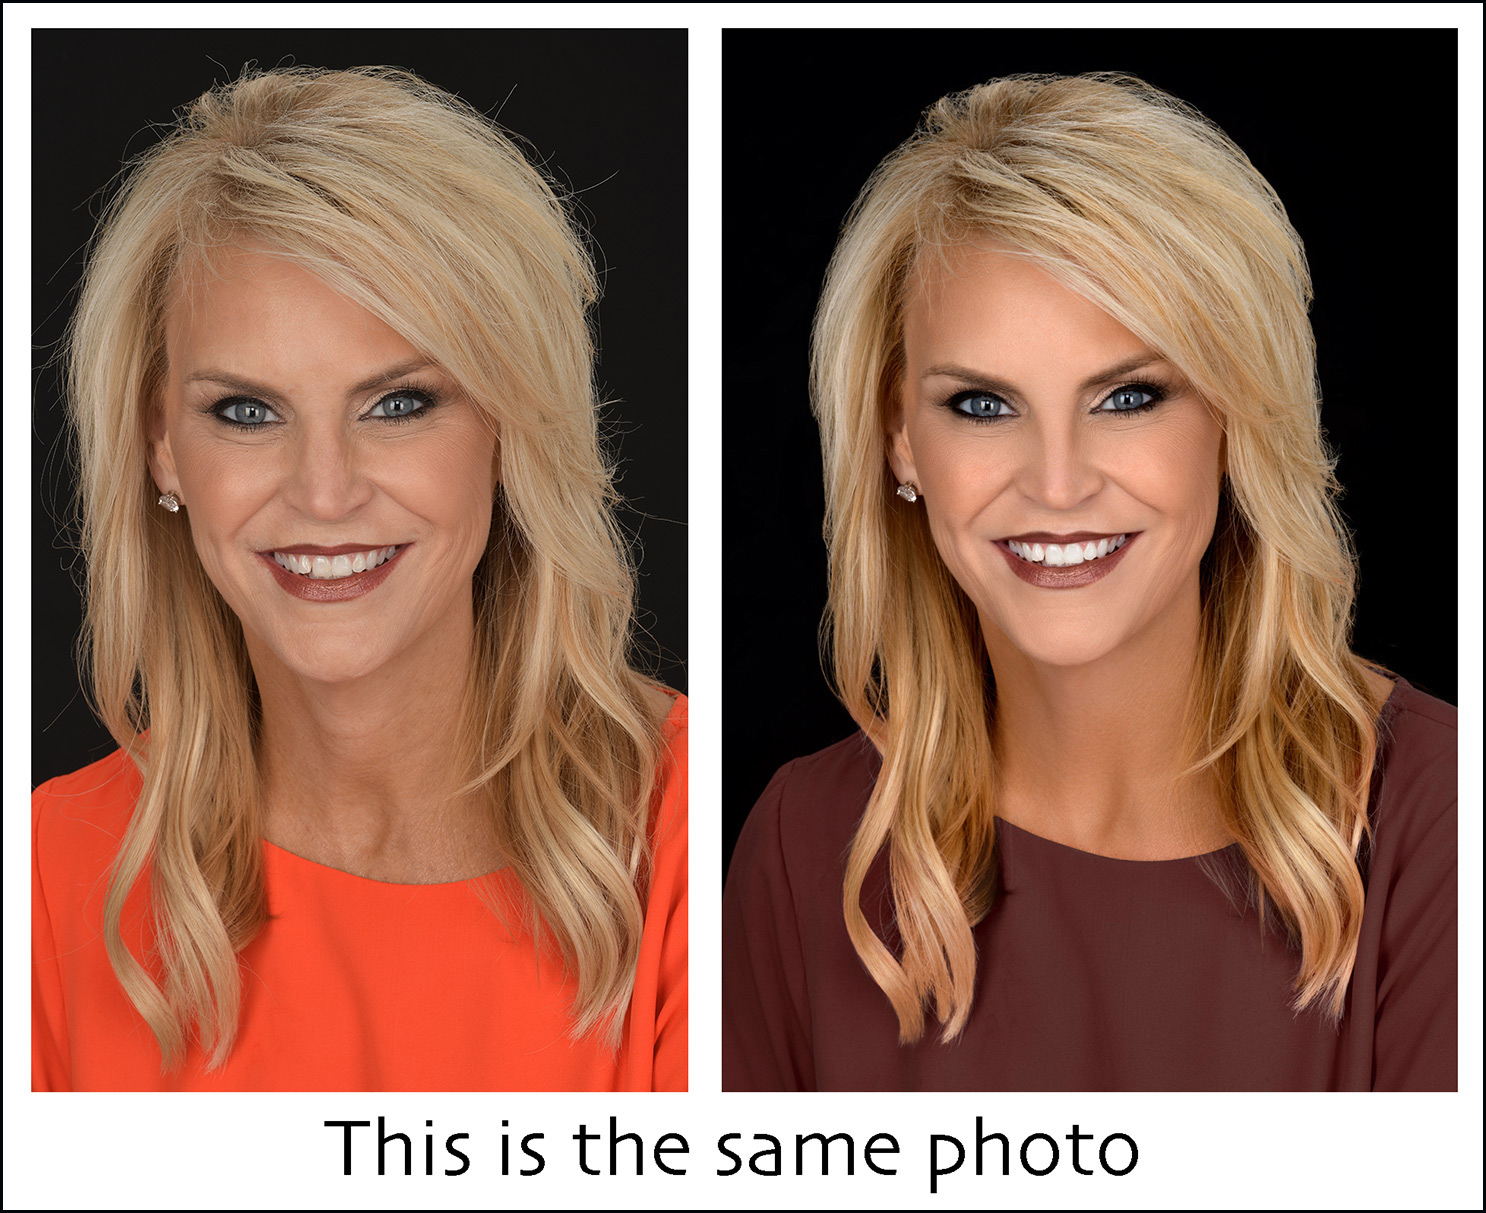 beauty makeover with airbrushing